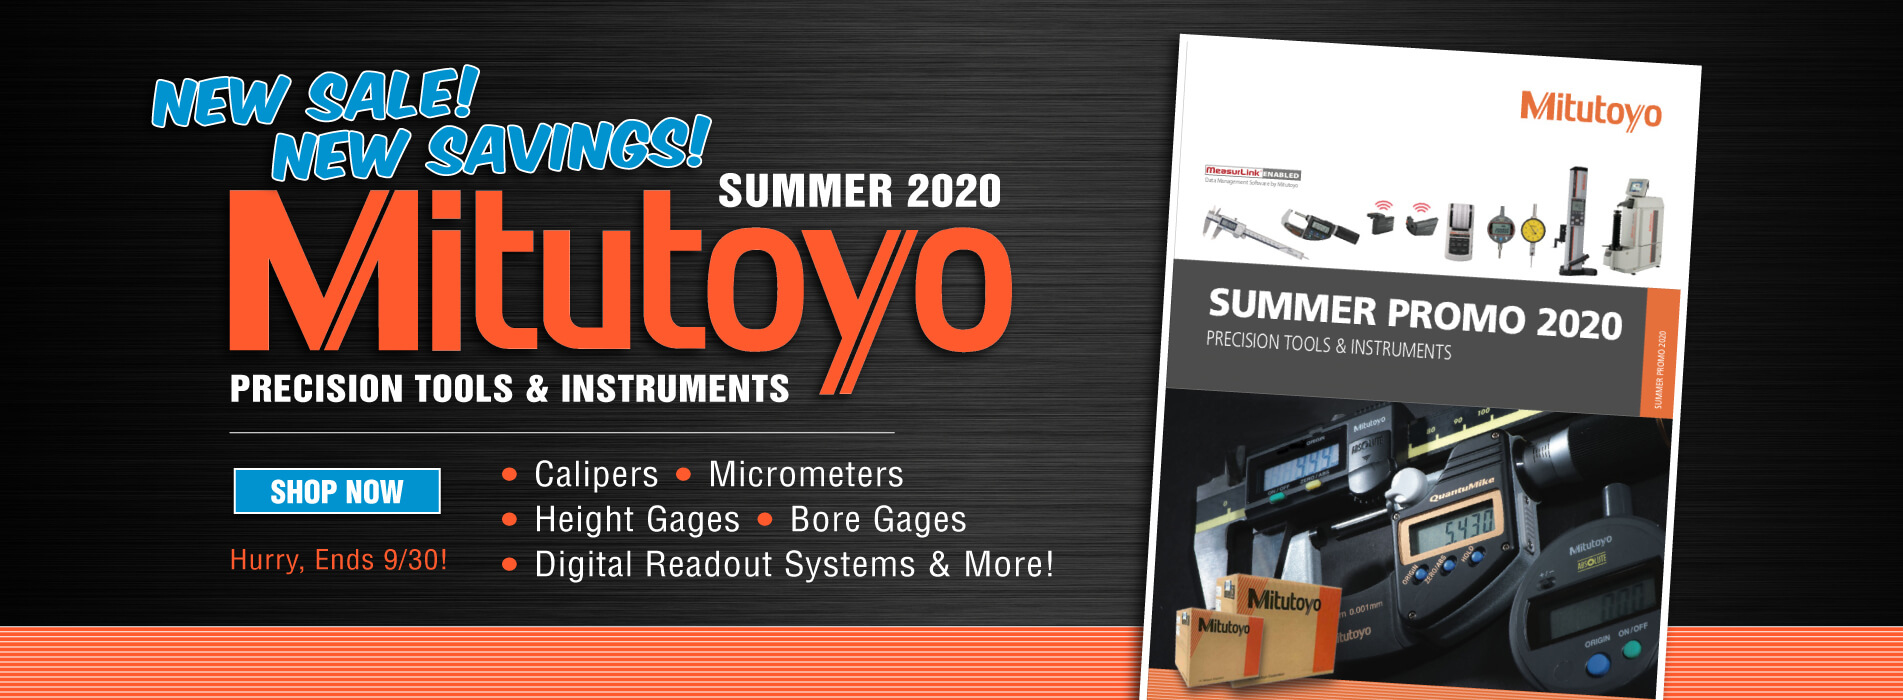 Mitutoyo Spring Sale until September 30th